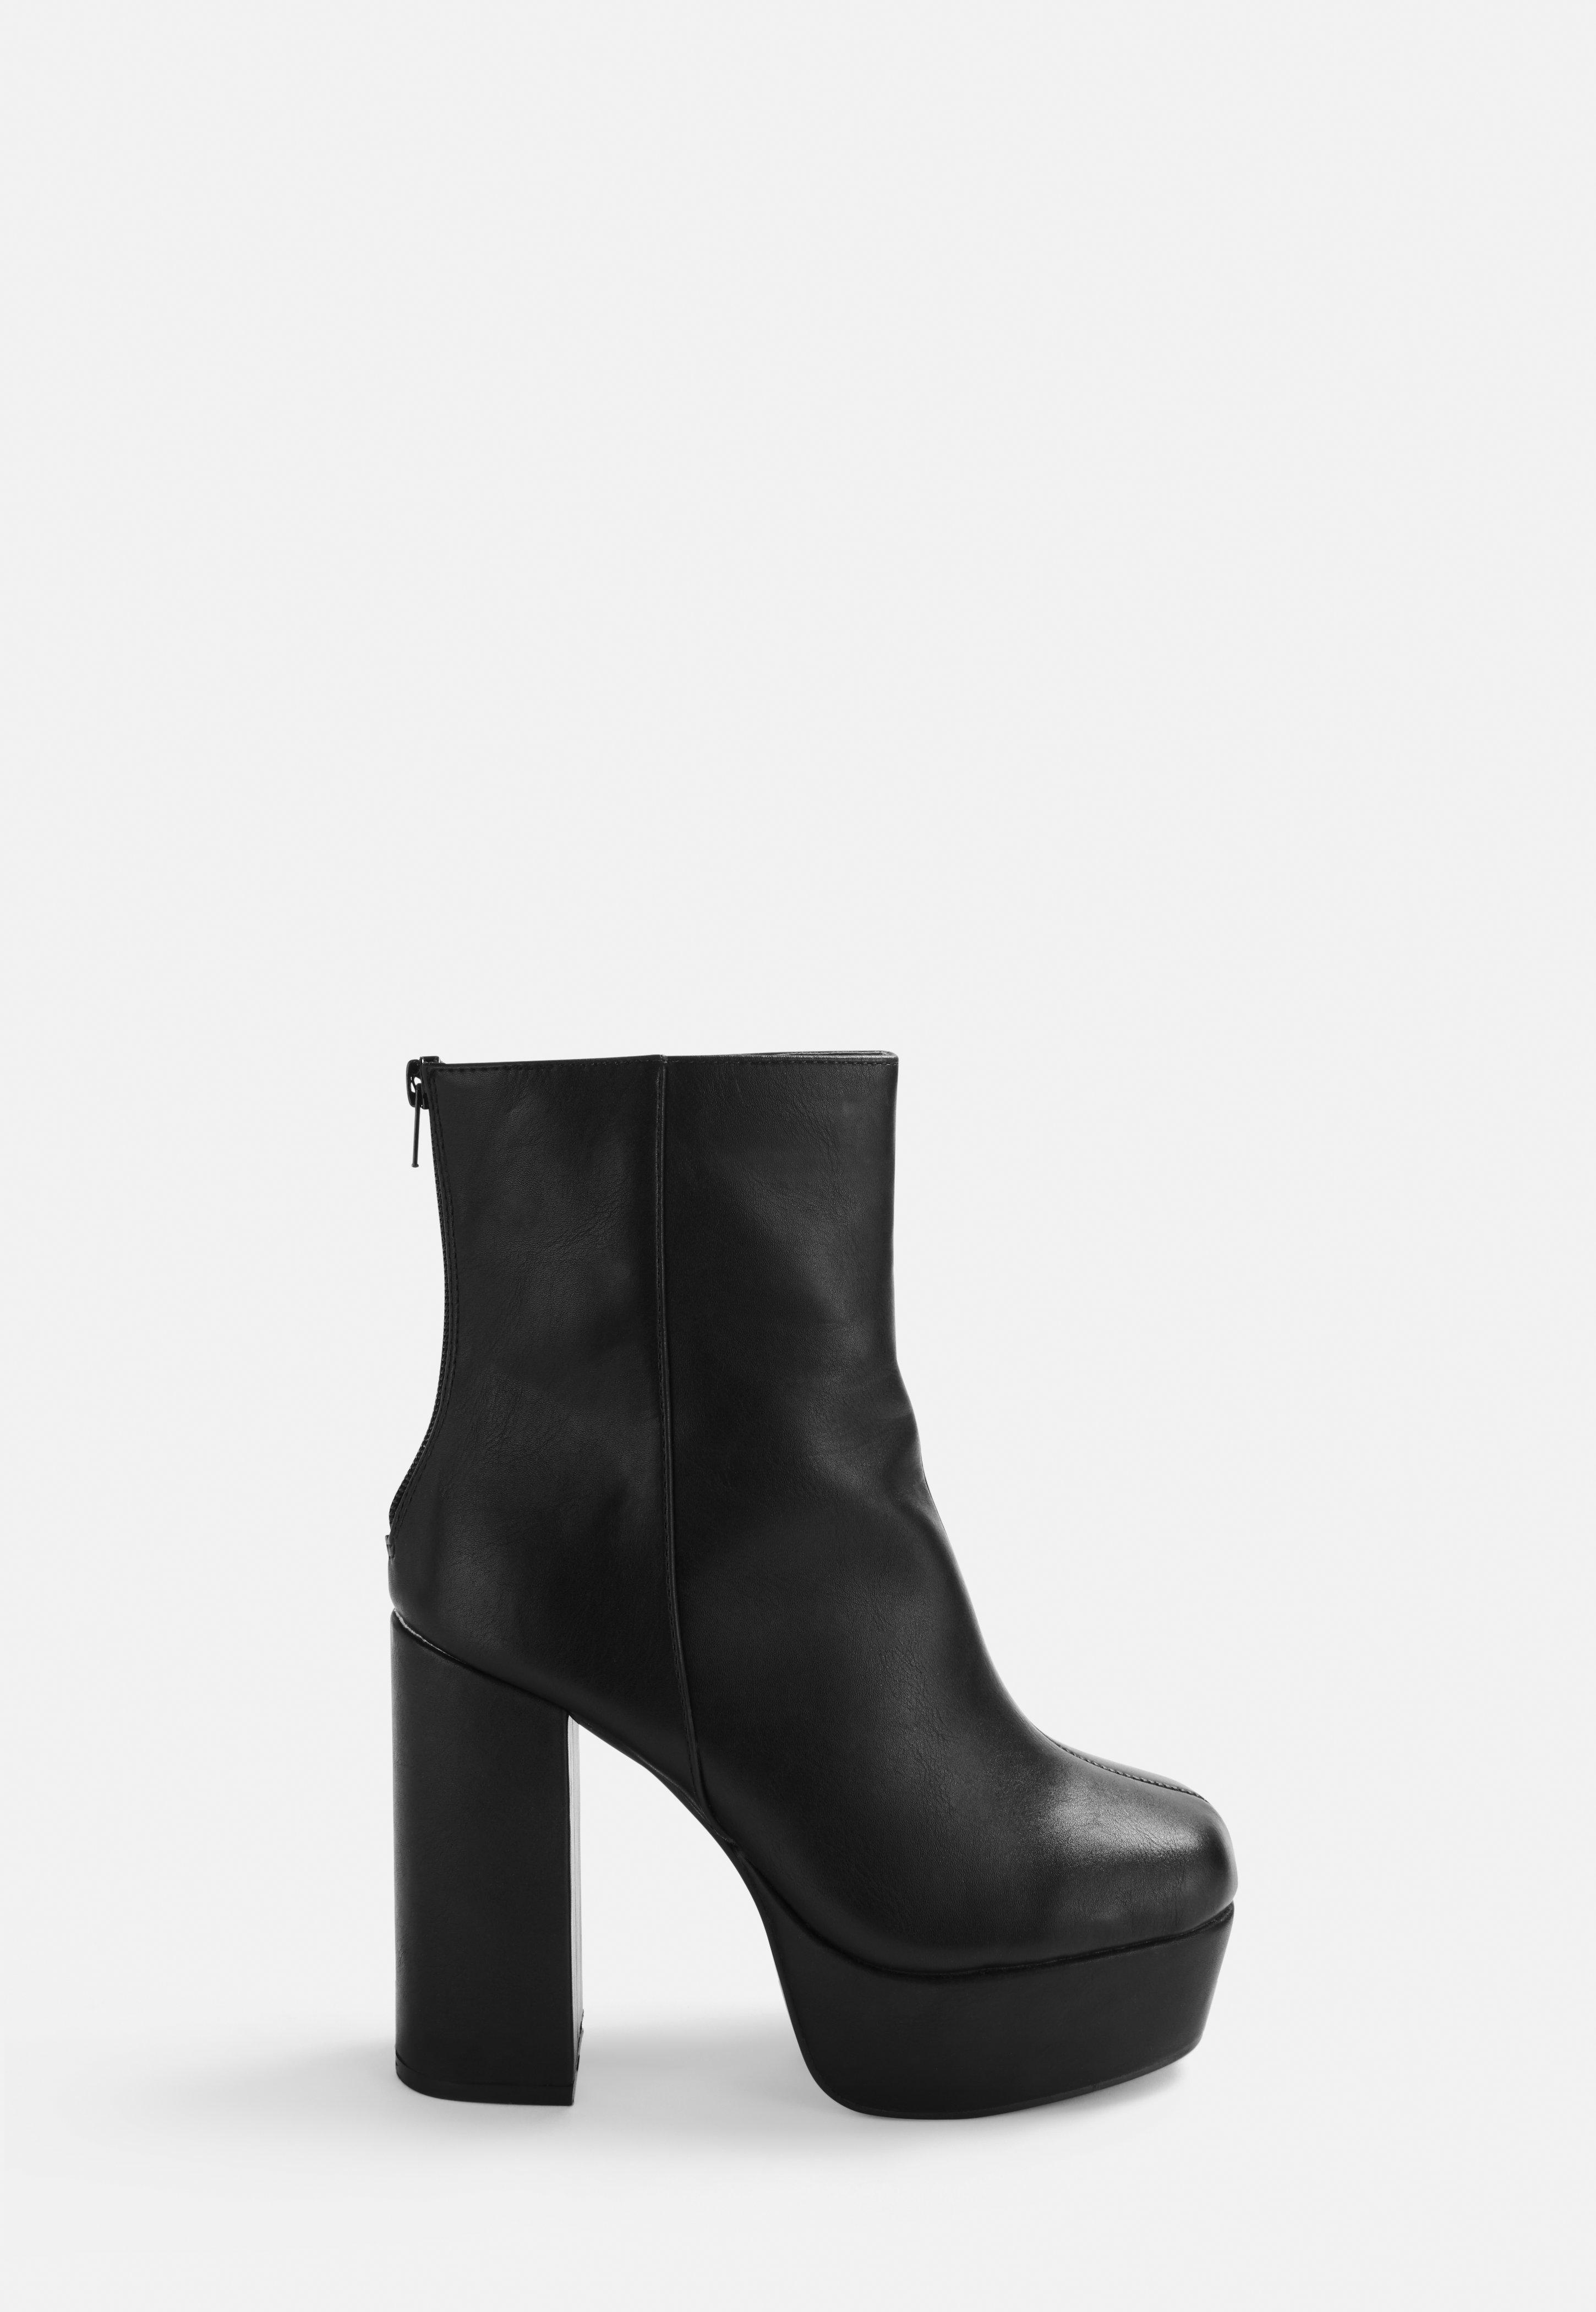 6adad4708a94 Women s Booties